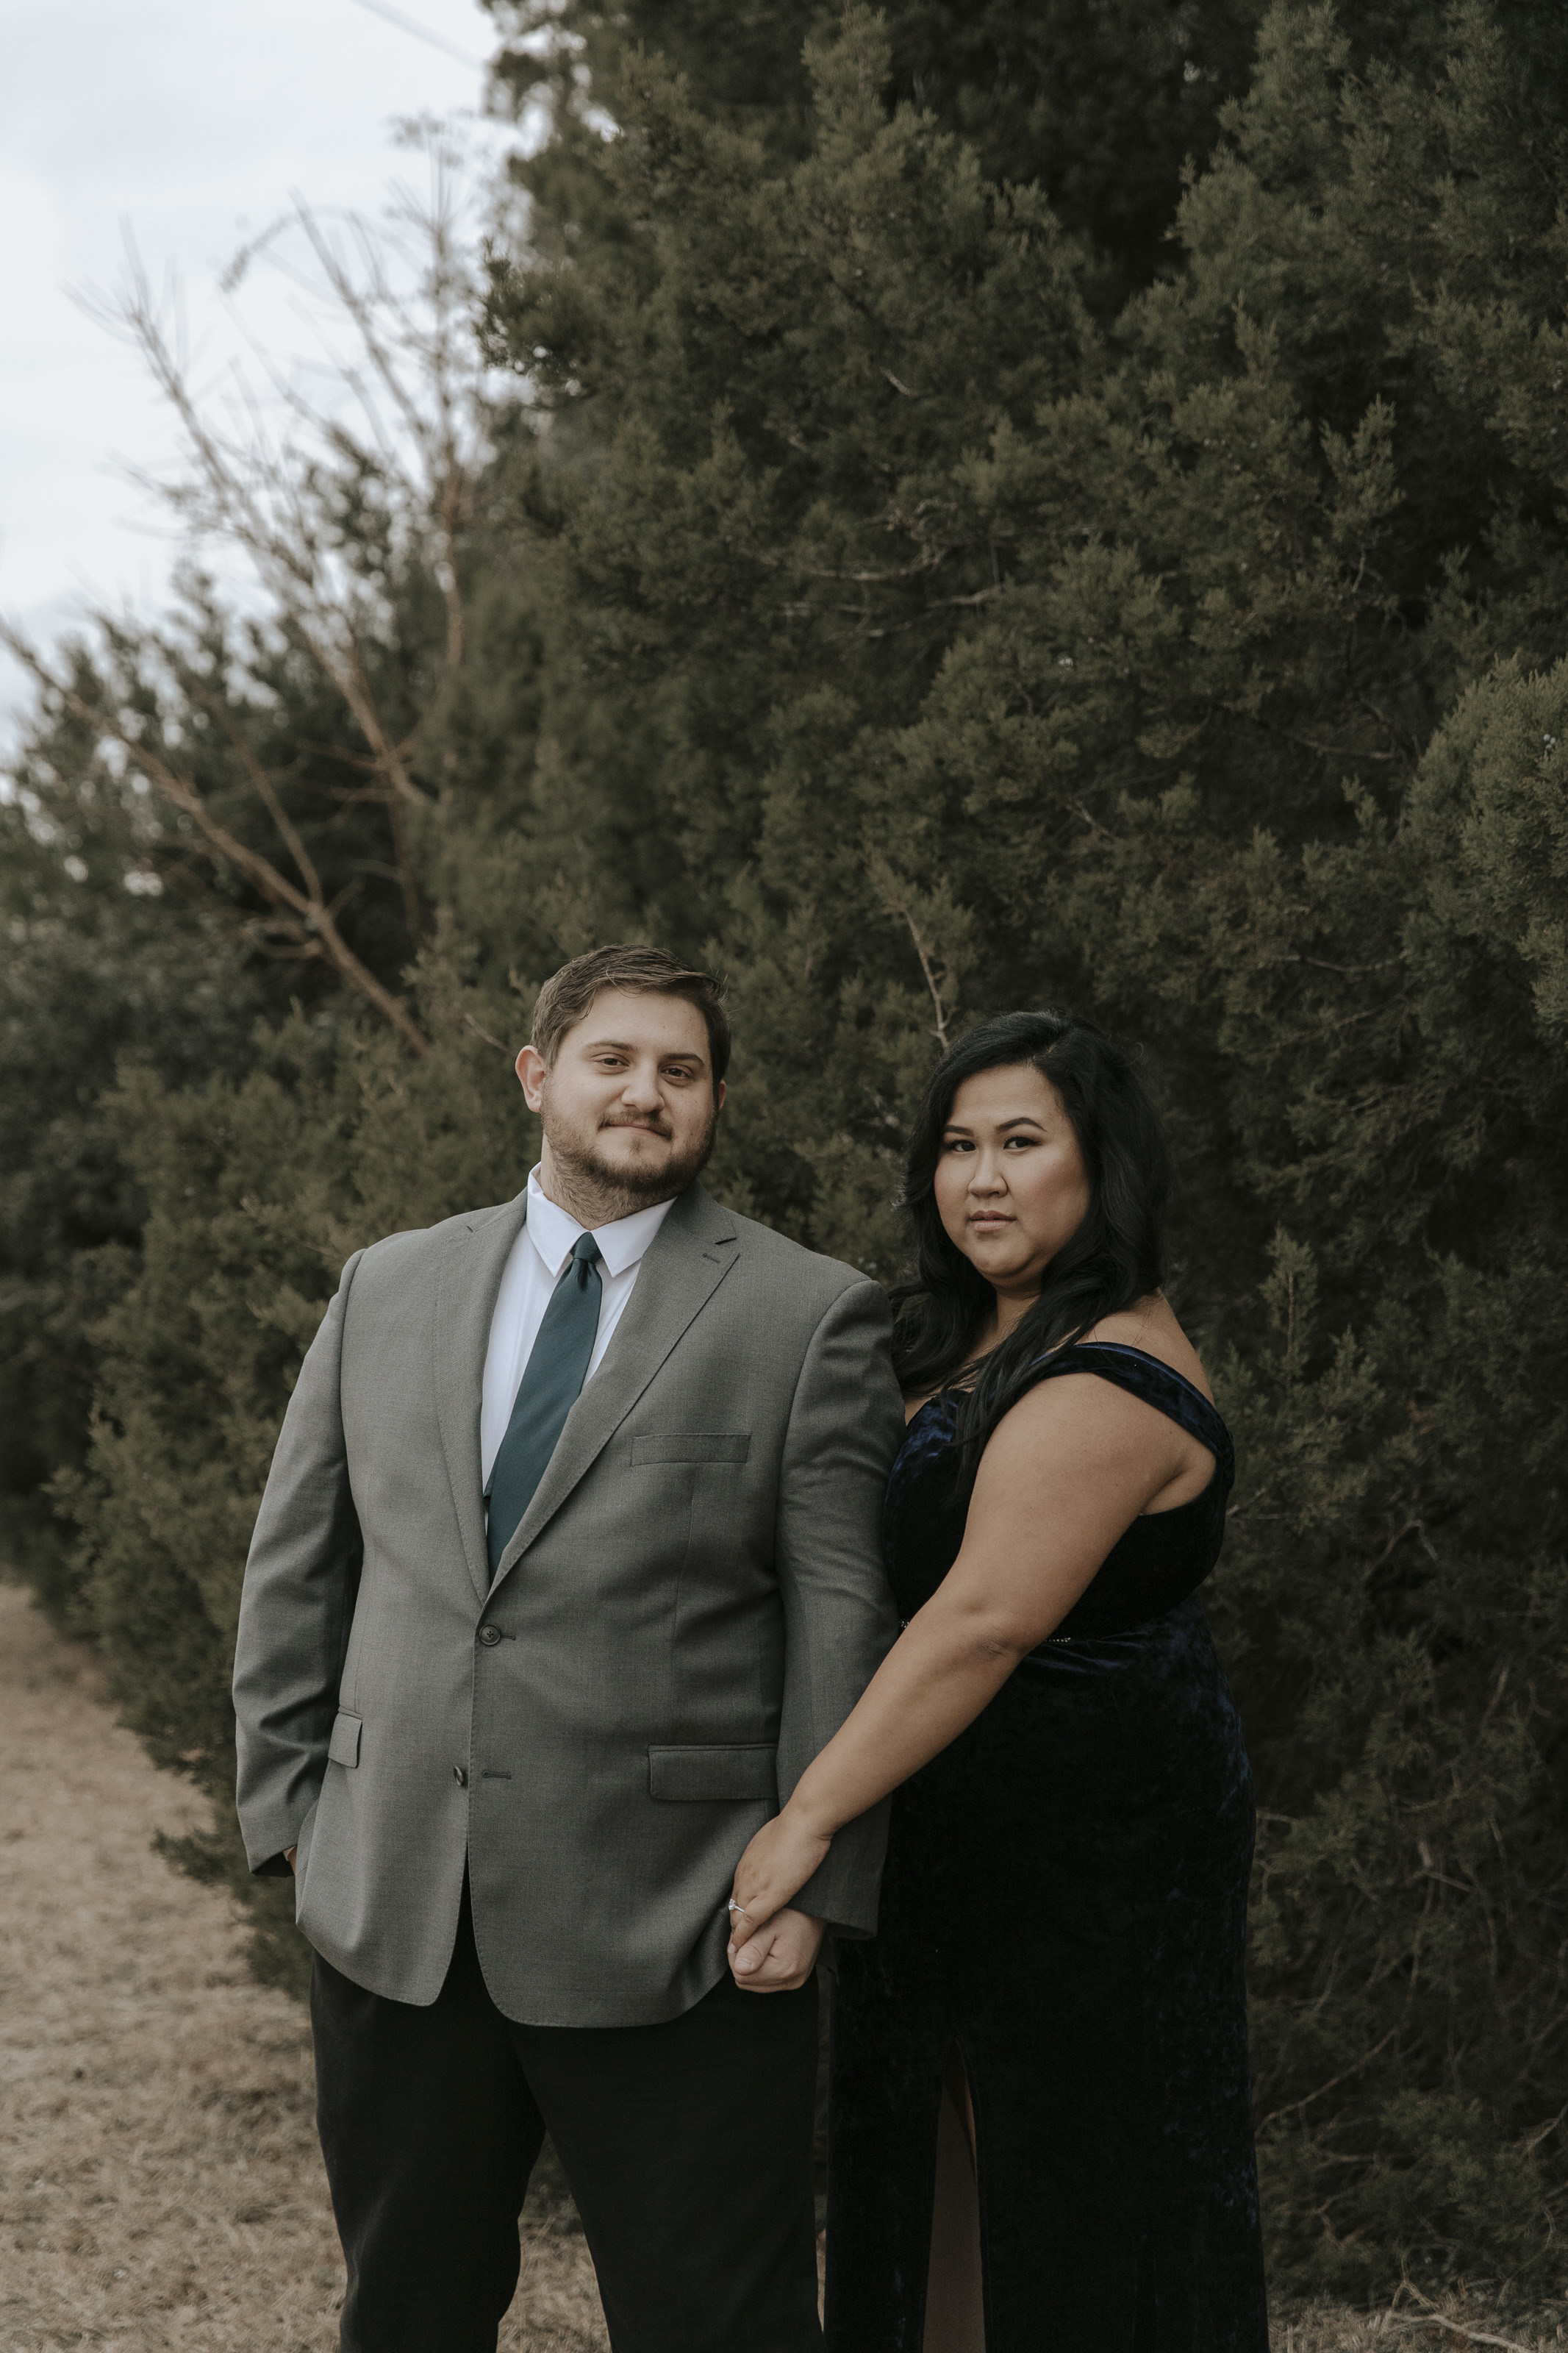 S-A-WALNUTCREEK-ENGAGEMENTS-JOHN-DAVID-WEDDINGS27245.jpg